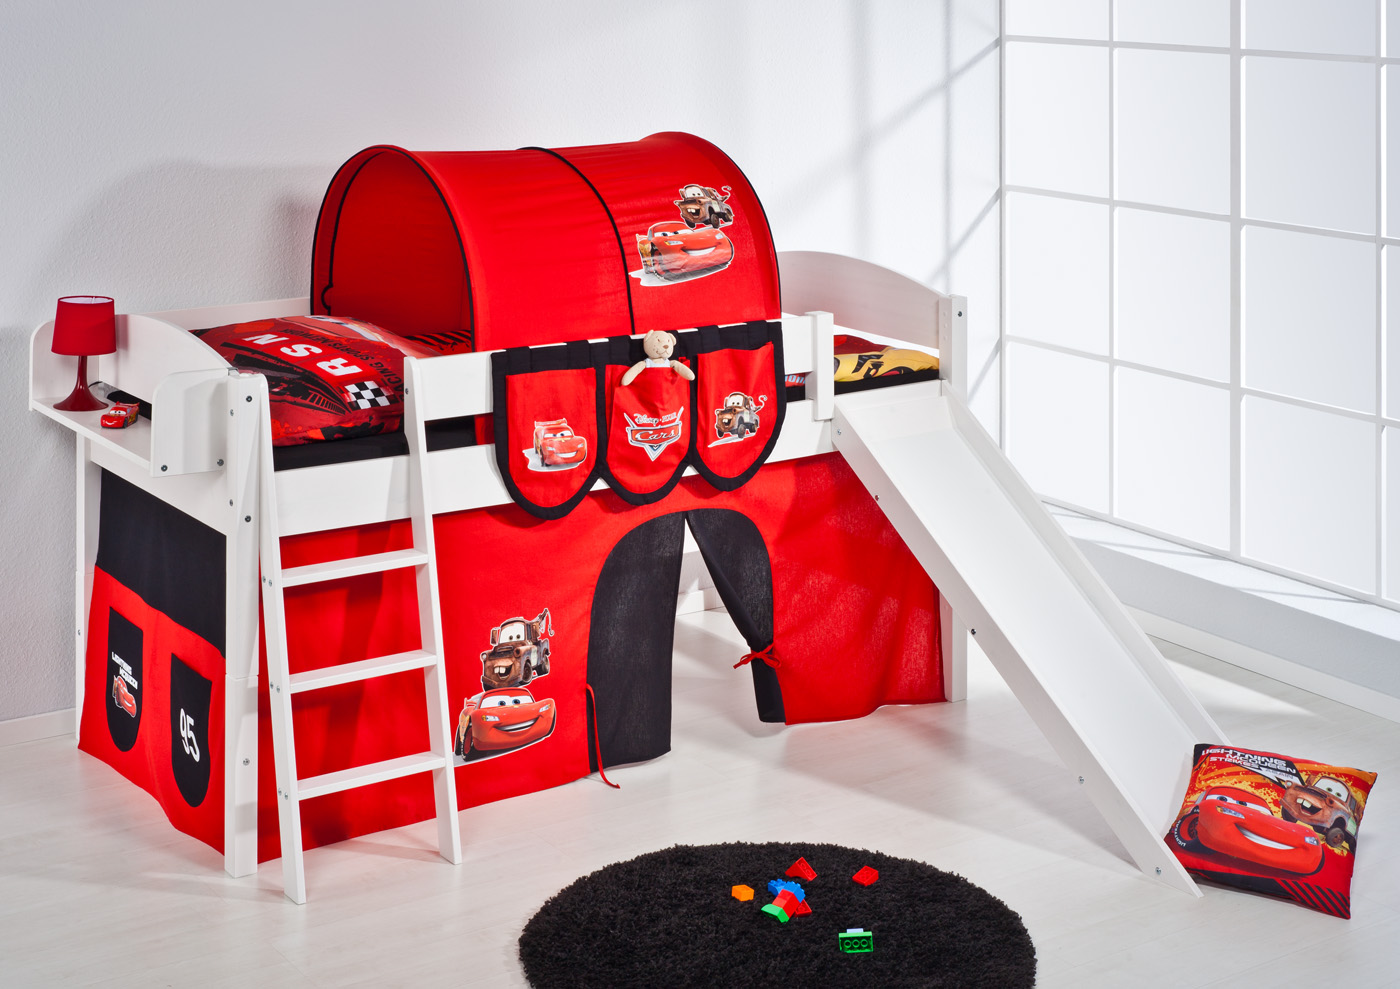 spielbett hochbett kinderbett kinder bett mit rutsche umbaubar einzelbett 4105 ebay. Black Bedroom Furniture Sets. Home Design Ideas